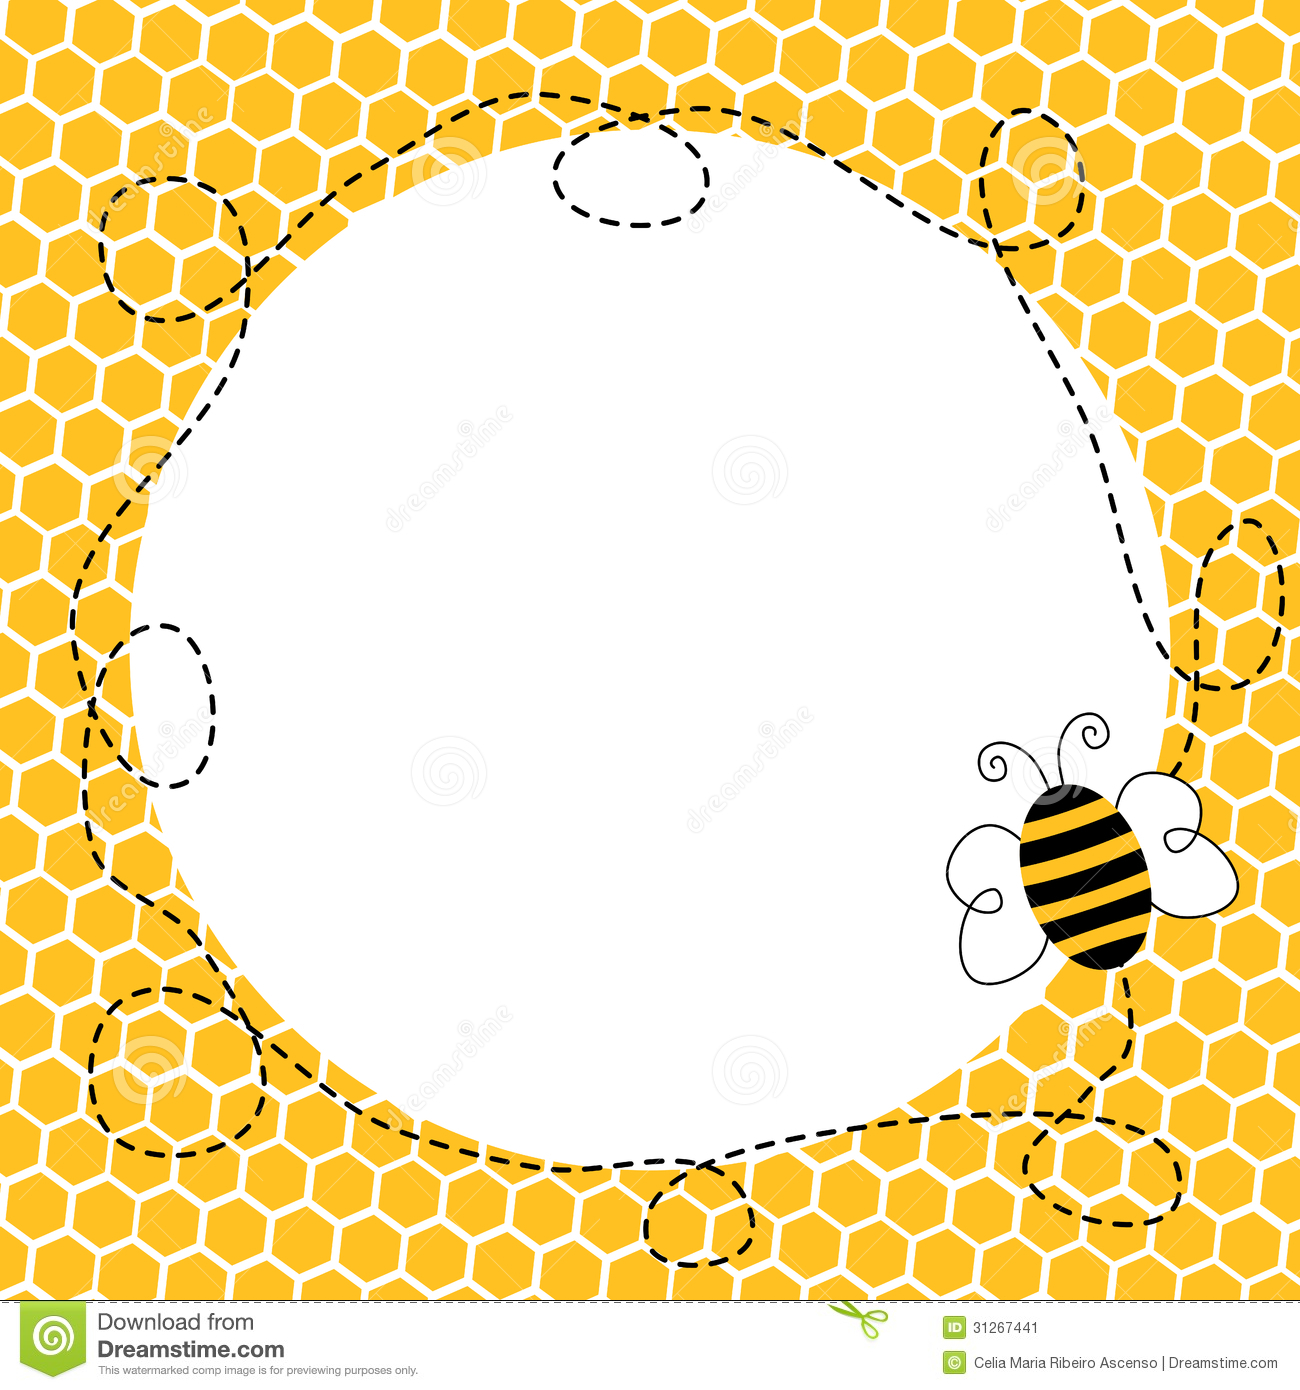 Bee Border Template | Search Results | Calendar 2015